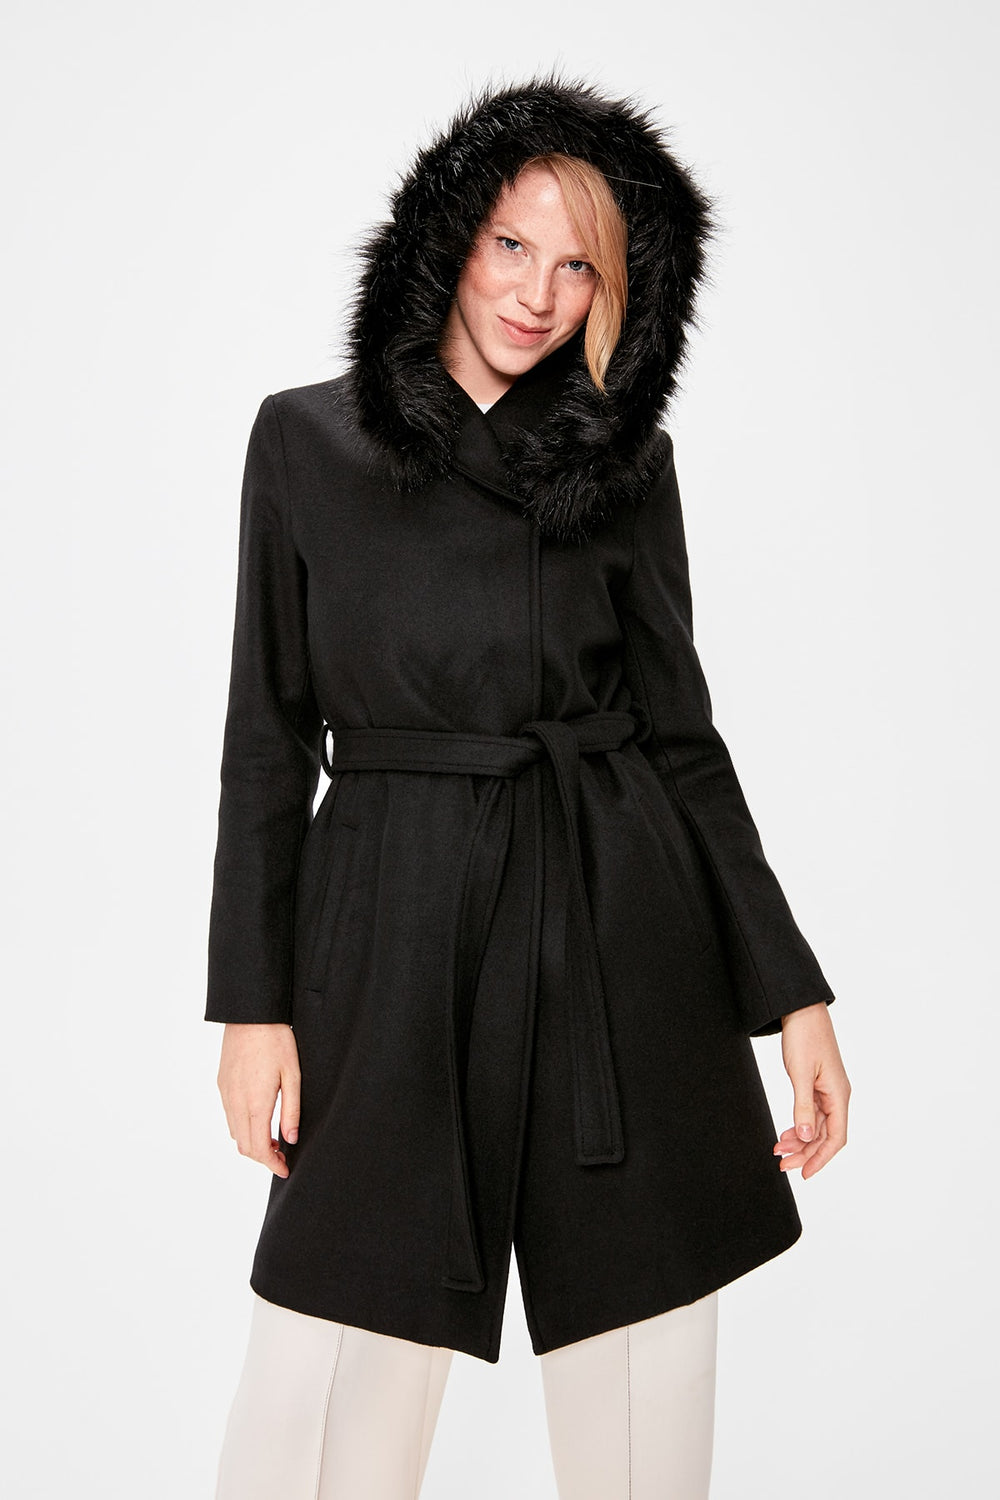 Black Fur Hooded Arched Woolen Stamp Coat - Top Maxy